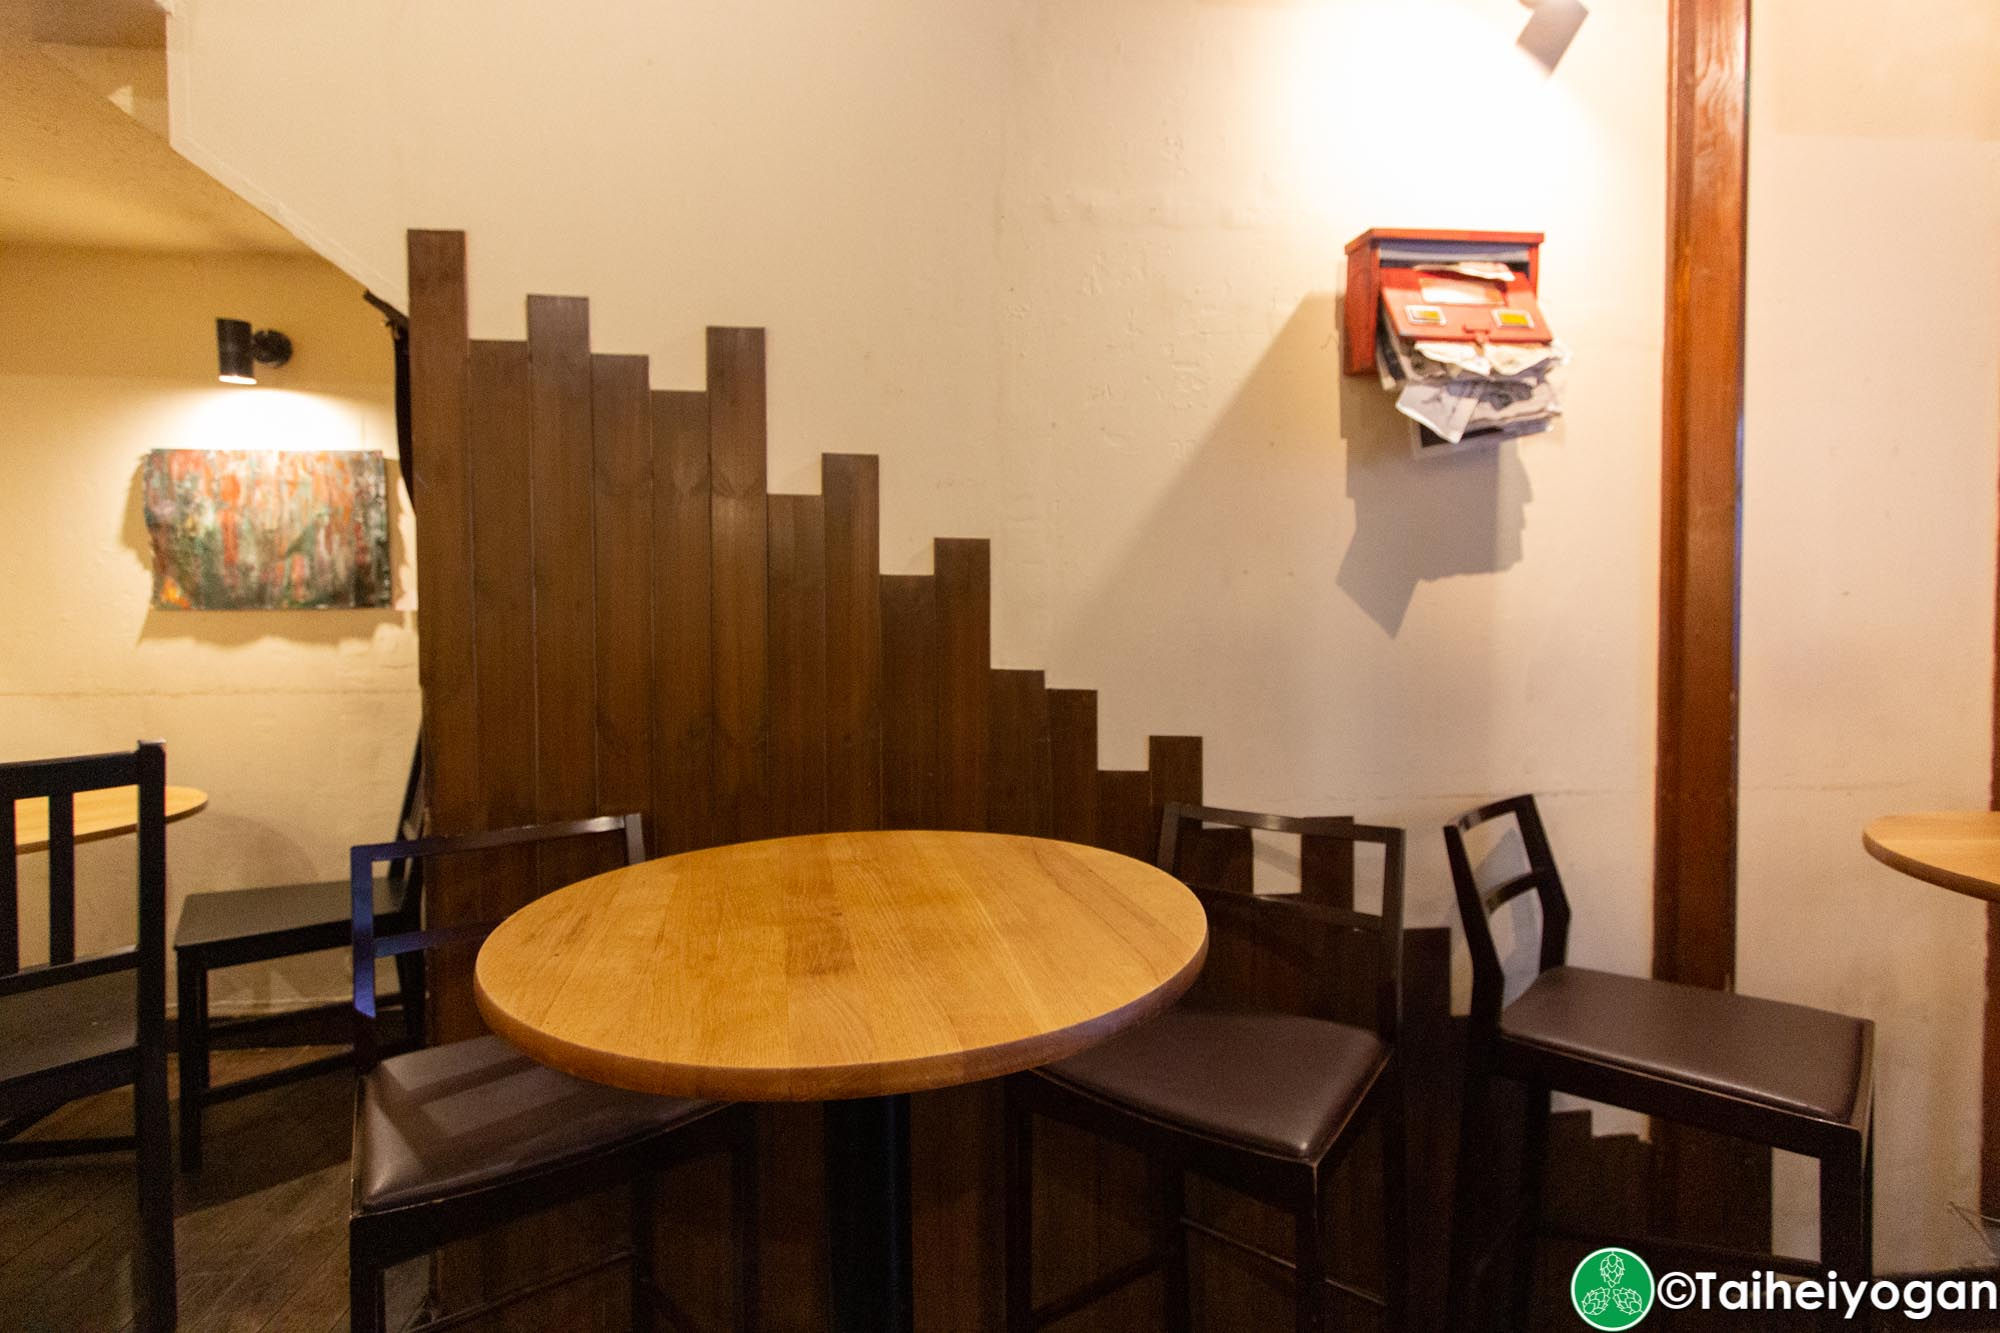 Beer Cafe Ban Kan (ビアカフェ 萬感) - Interior - Tables